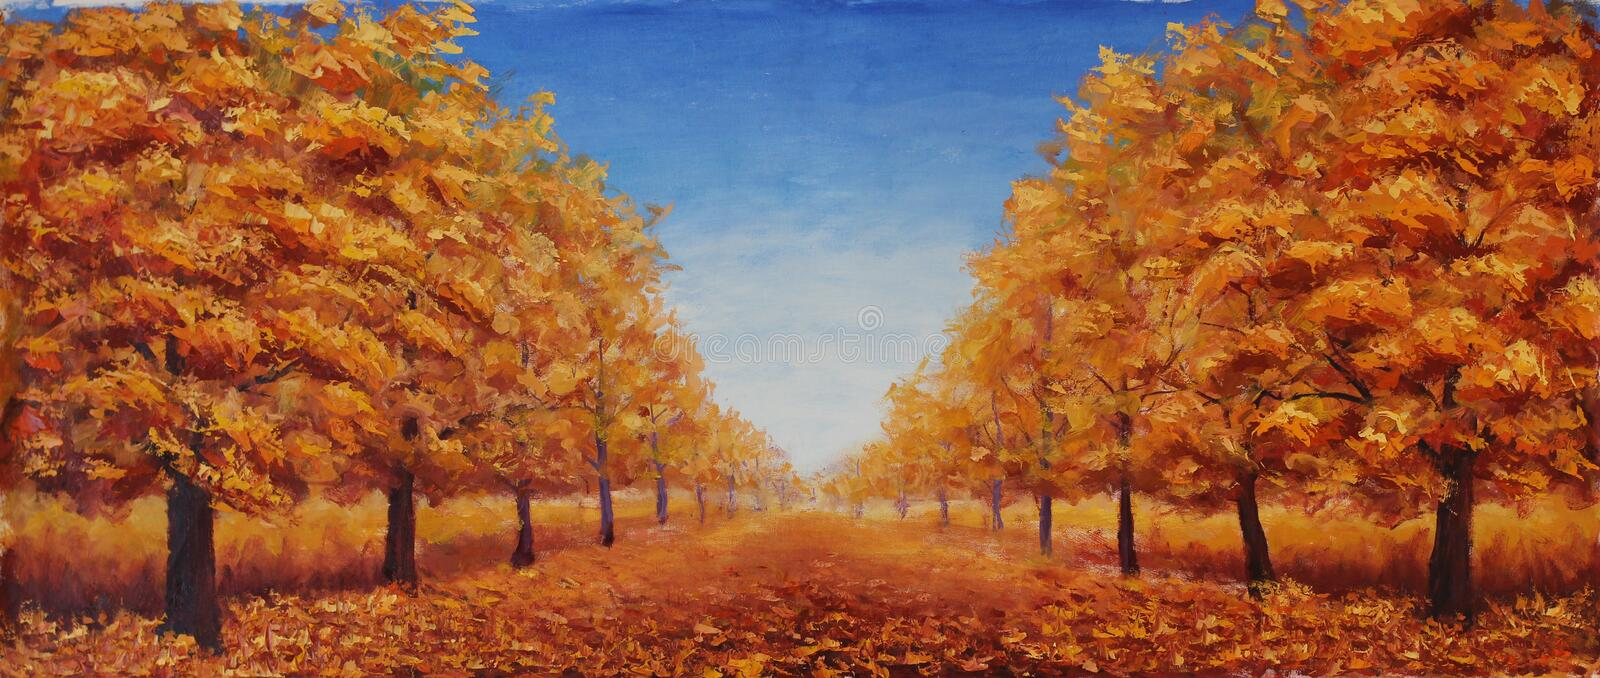 The street is dotted with yellow leaves. Trees in autumn on a background of blue sky with clouds stock photo